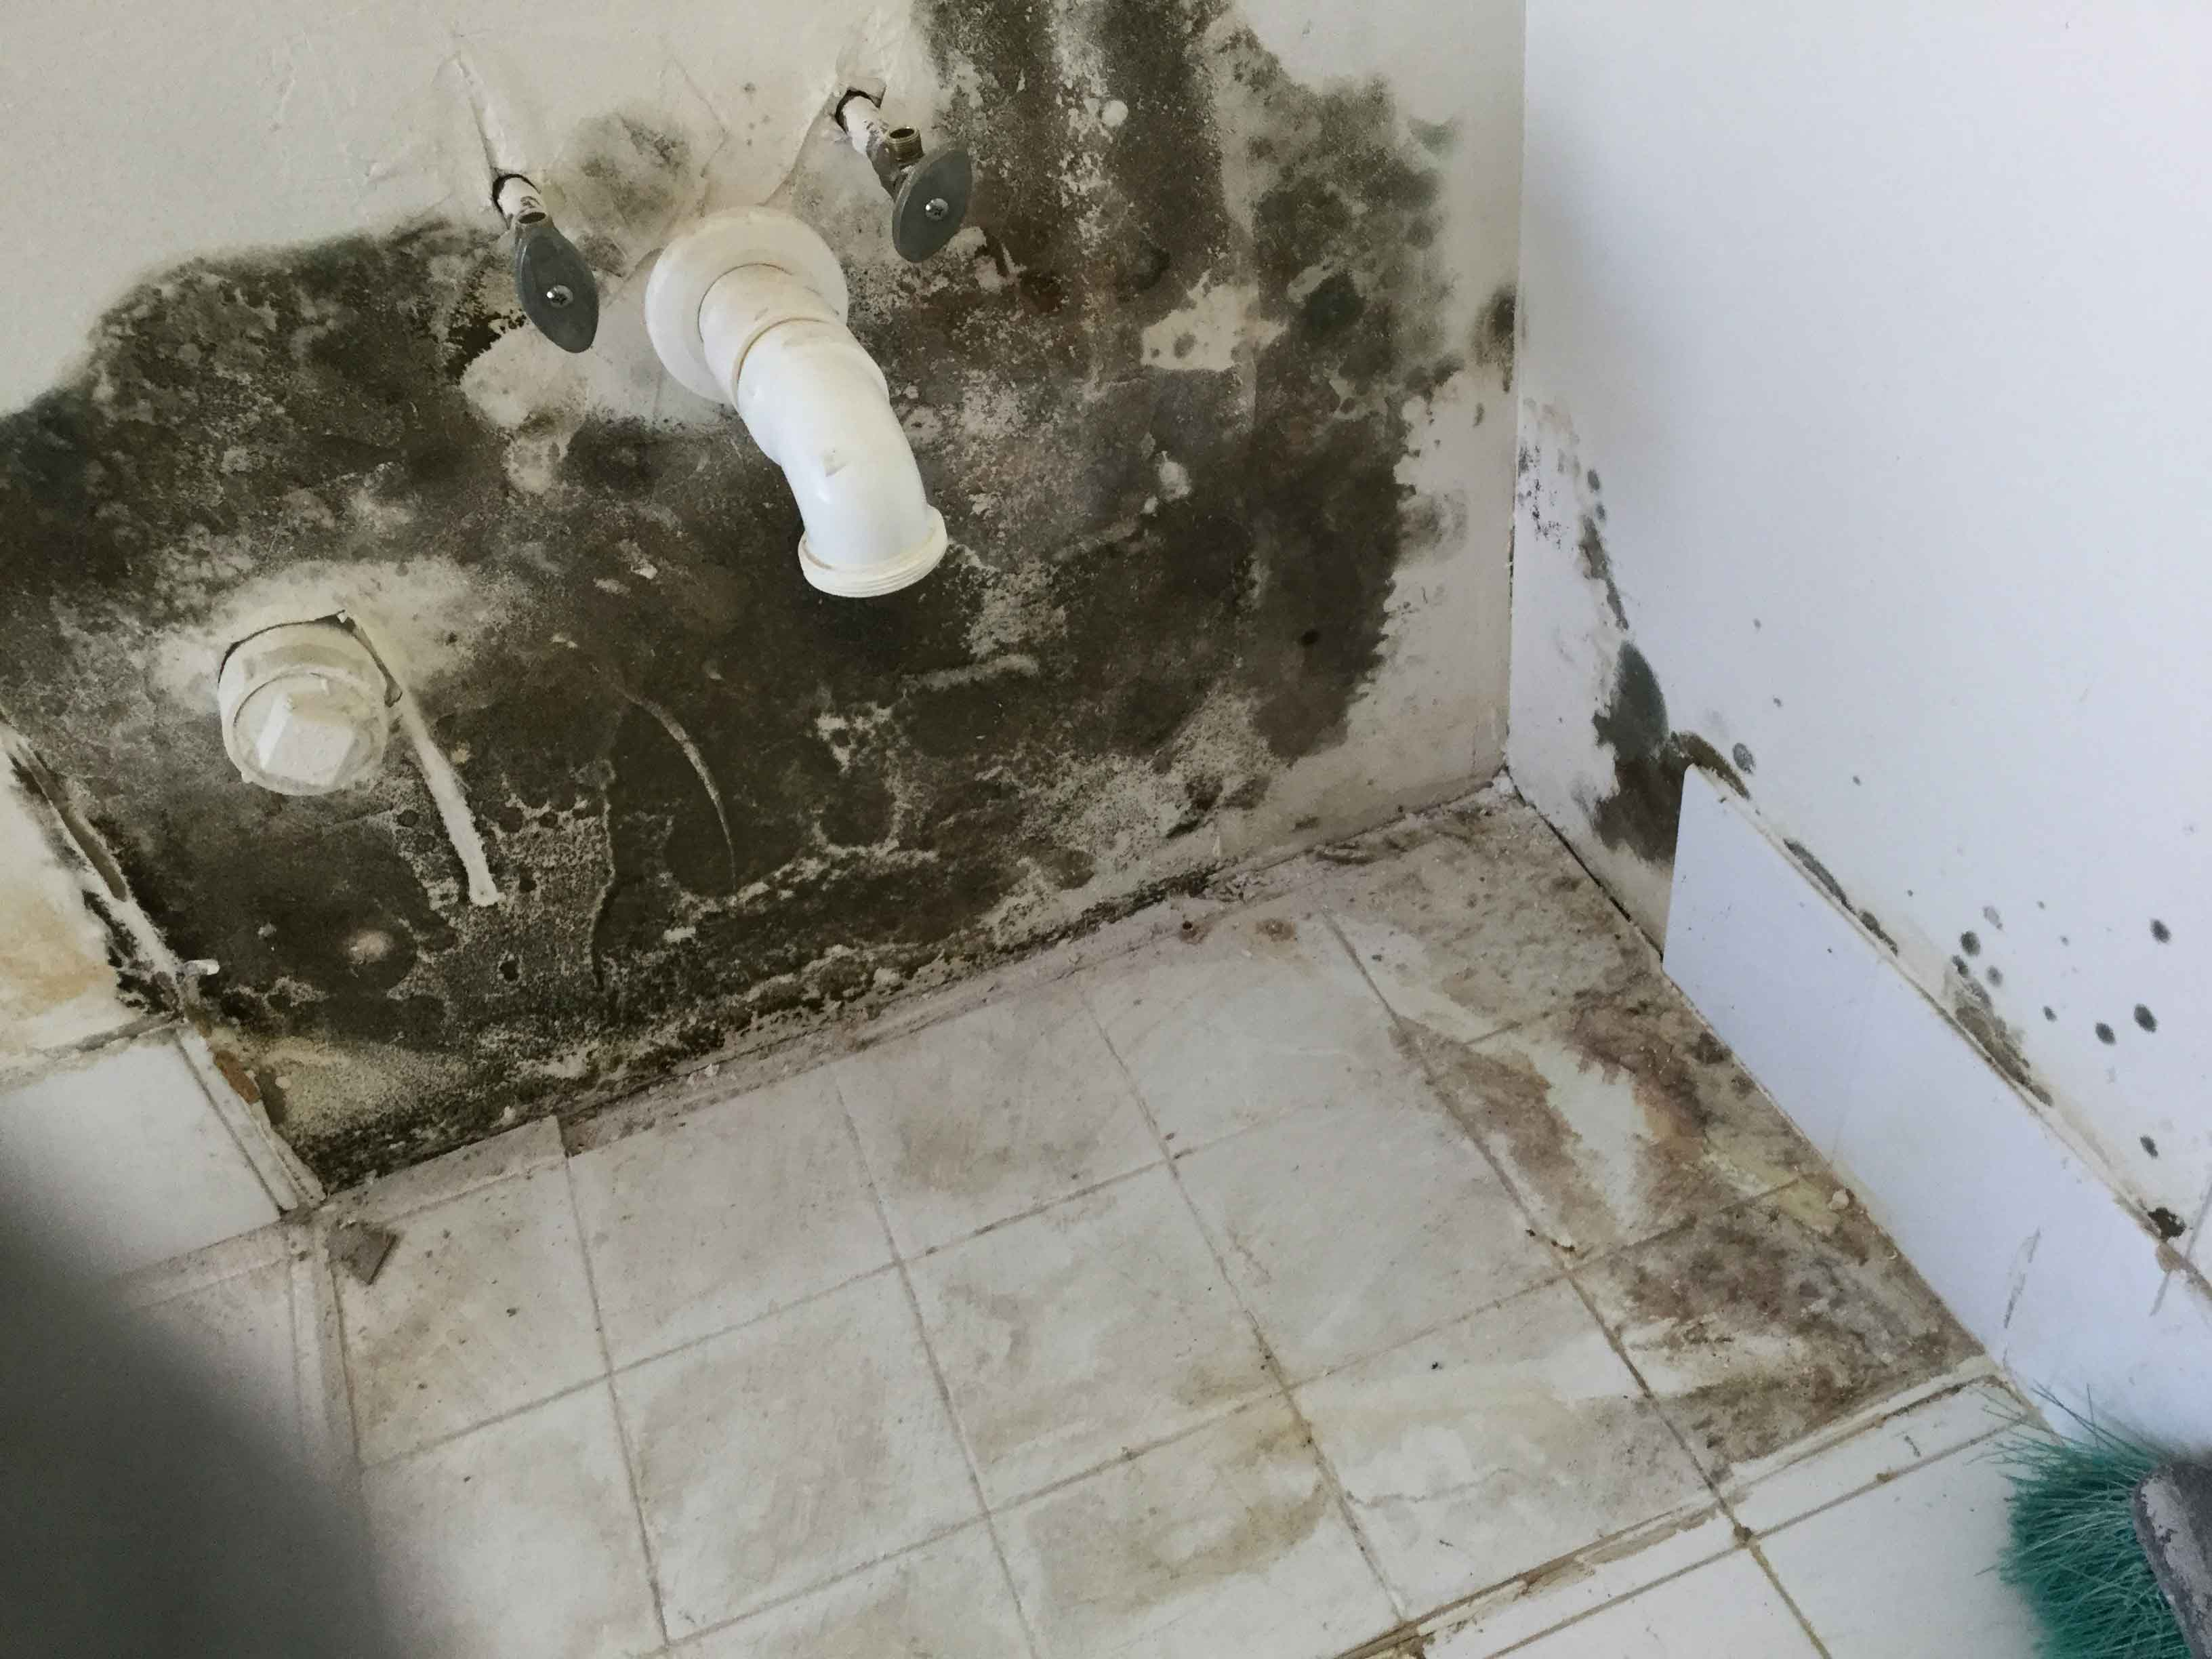 Reel-Contractors-Toilet-Badroom-Back-Wall-Mold-Damage-Specialists-Pembroke-Pines-Fl-Company